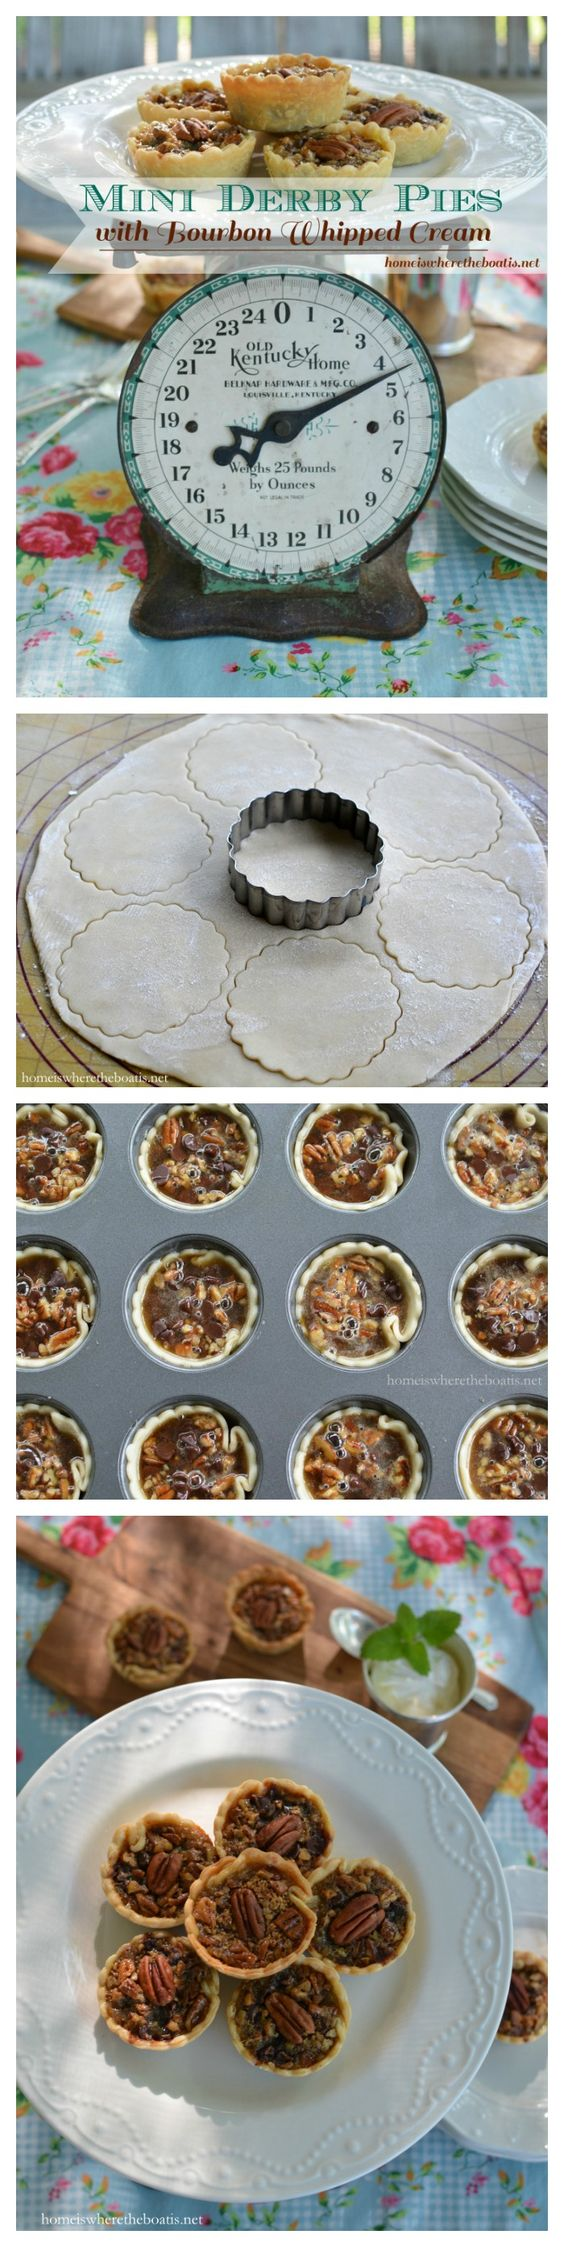 "Mini Derby Pies marry pecan pie with chocolate and a touch of Kentucky bourbon for a winning trifecta! This Bluegrass-inspired recipe is just the right size for ""the most exciting two minutes in sports"" and to accompany your Mint Julep while watching the Kentucky Derby or as an sweet ending for a party or crowd!:"